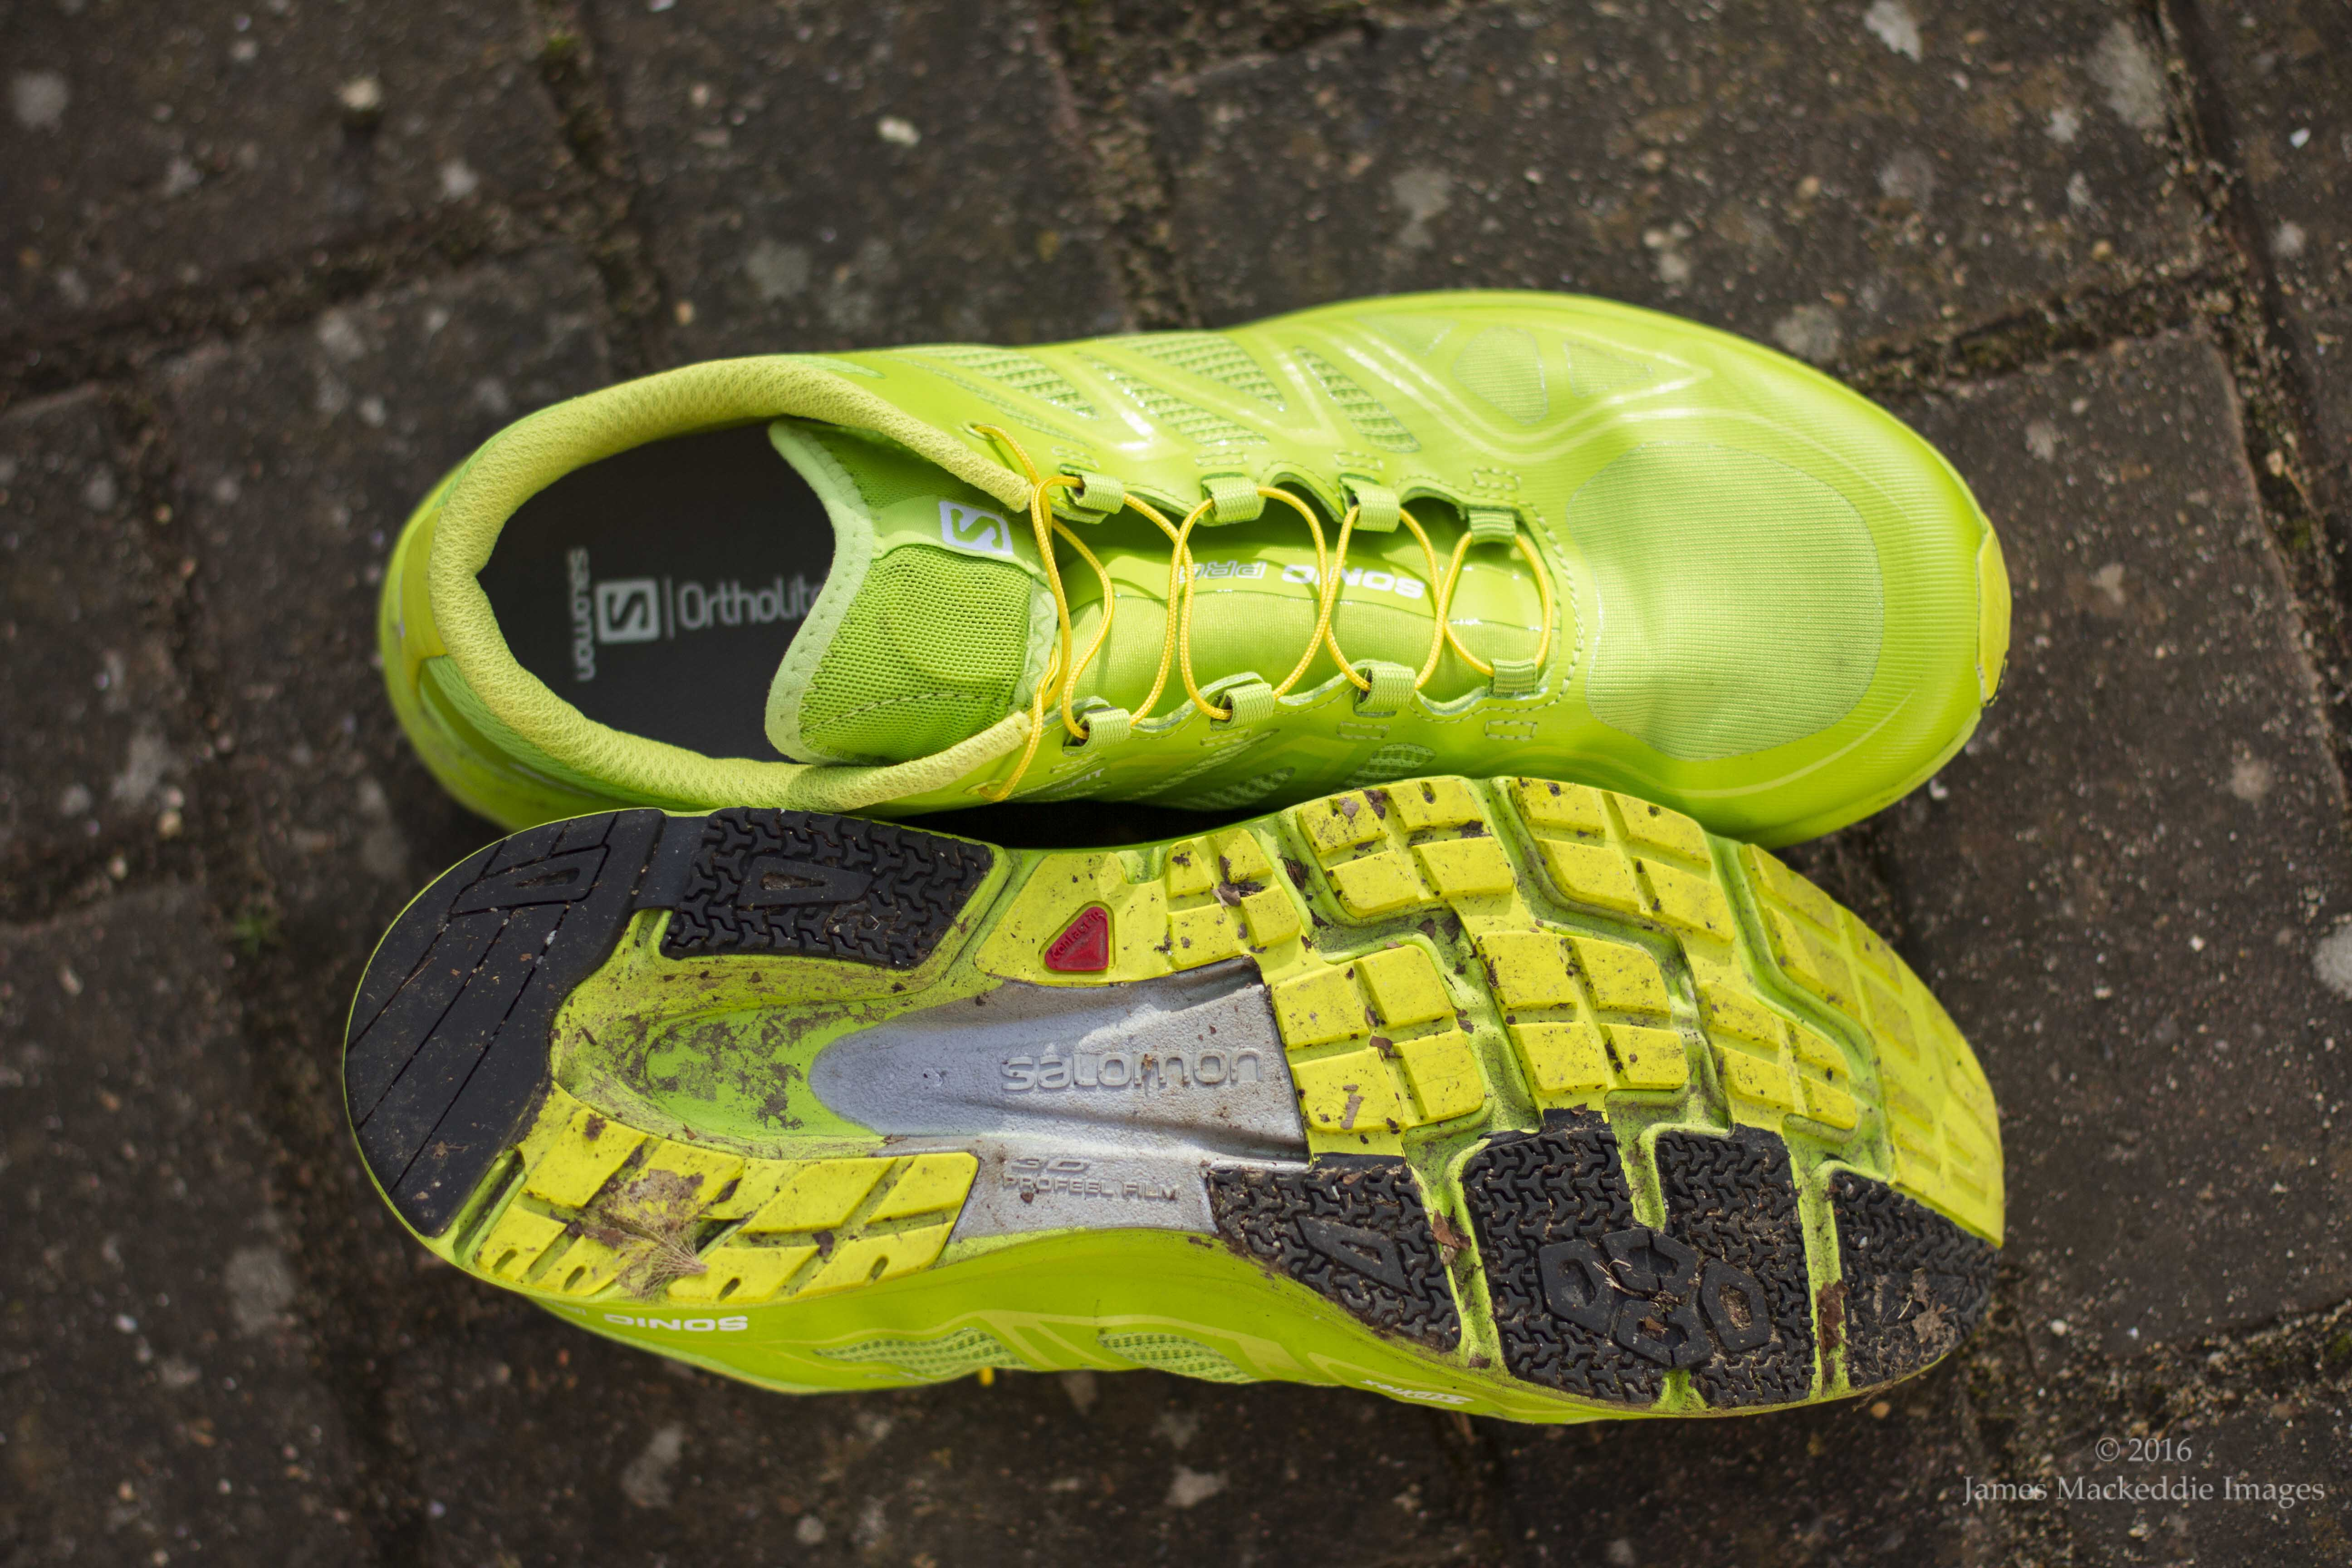 Salomon Sonic Pro sole top